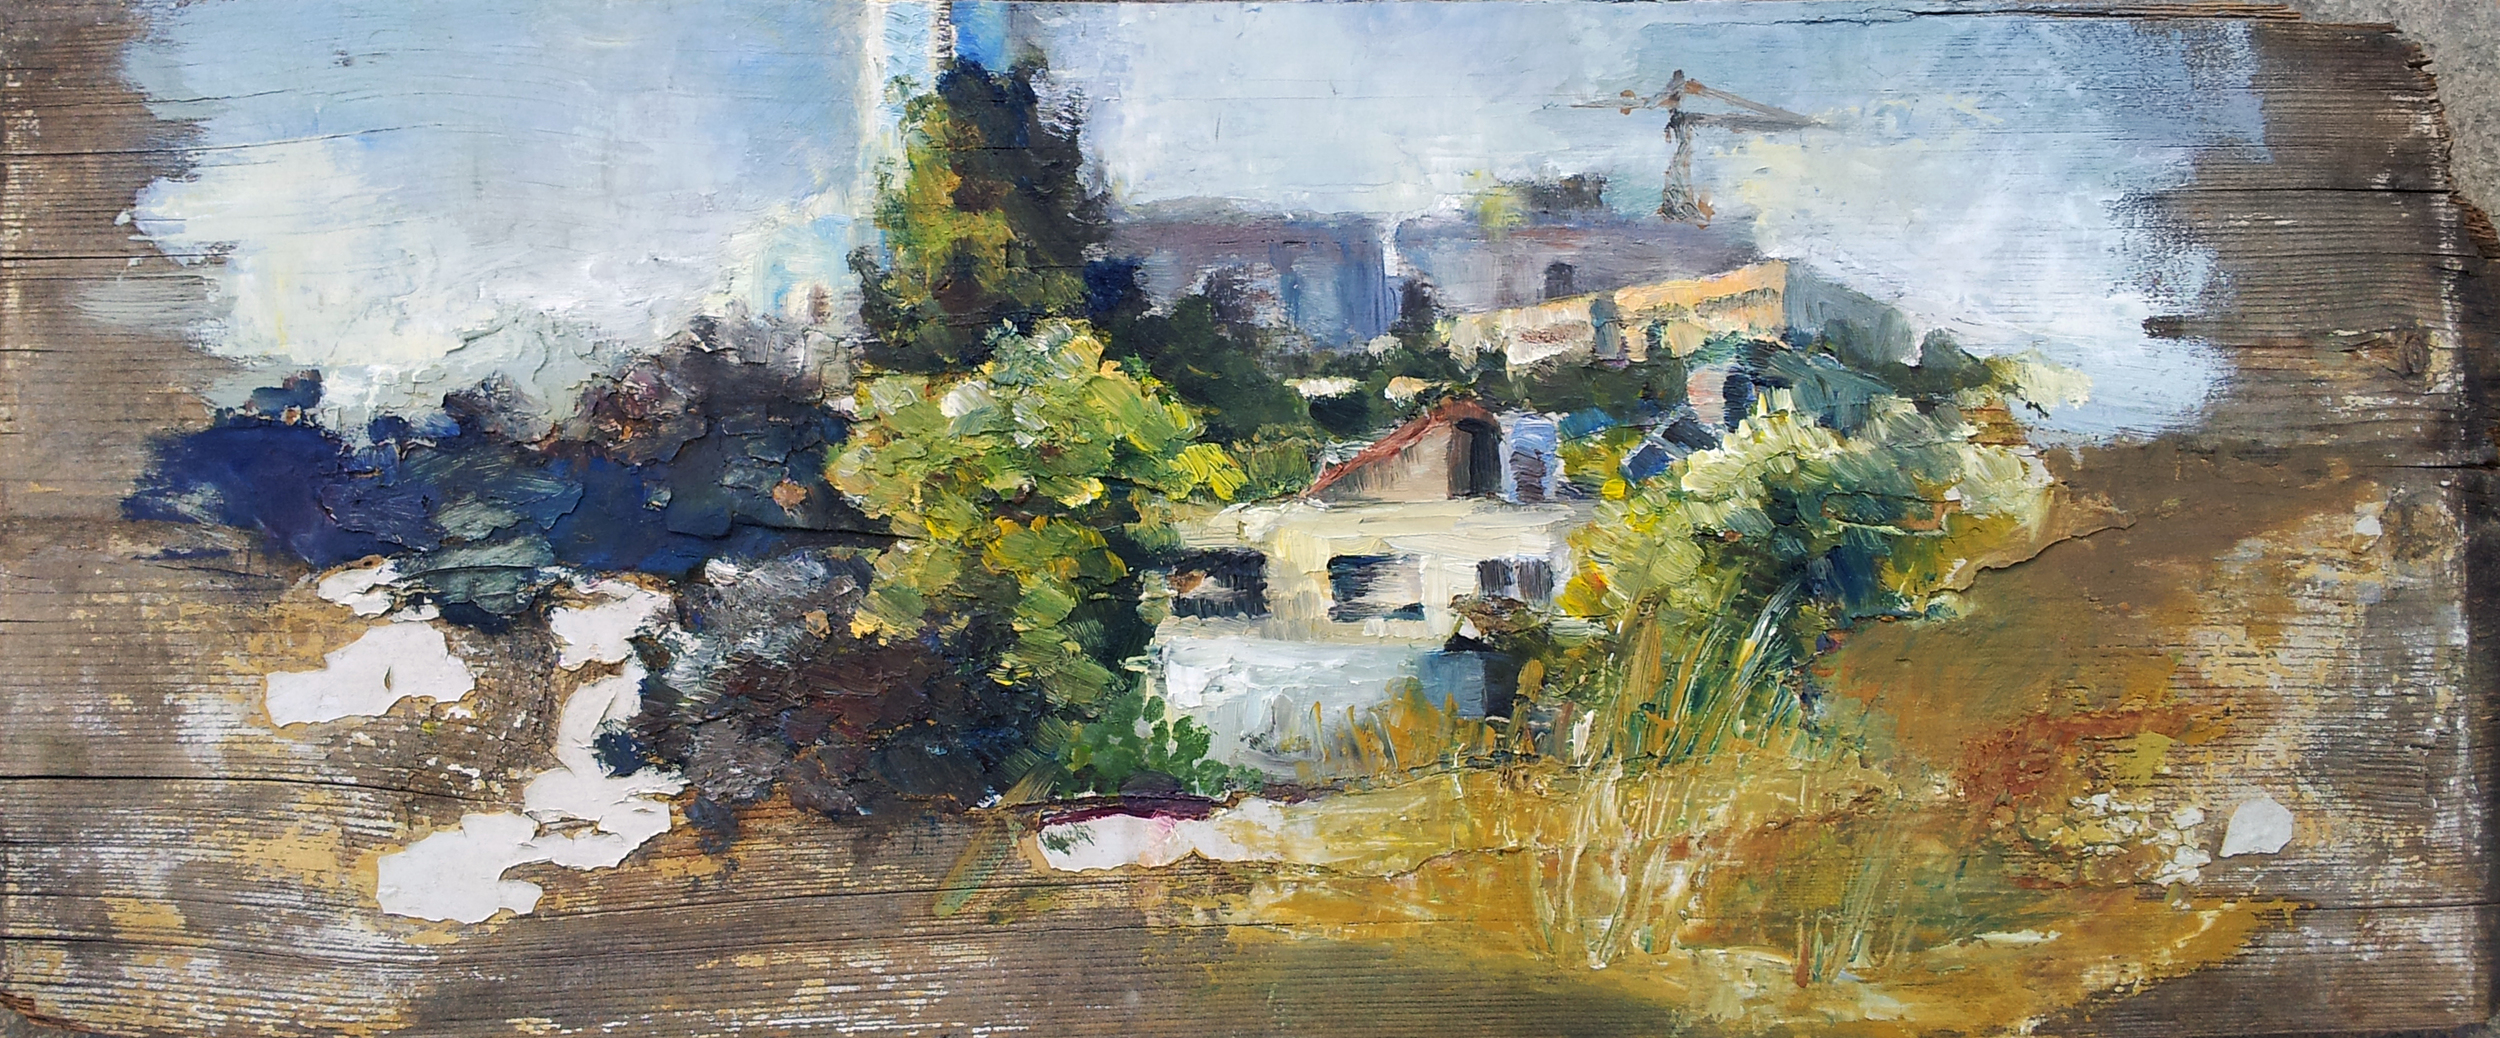 Nachlaot, Jerusalem. Oil on wood. 2014.